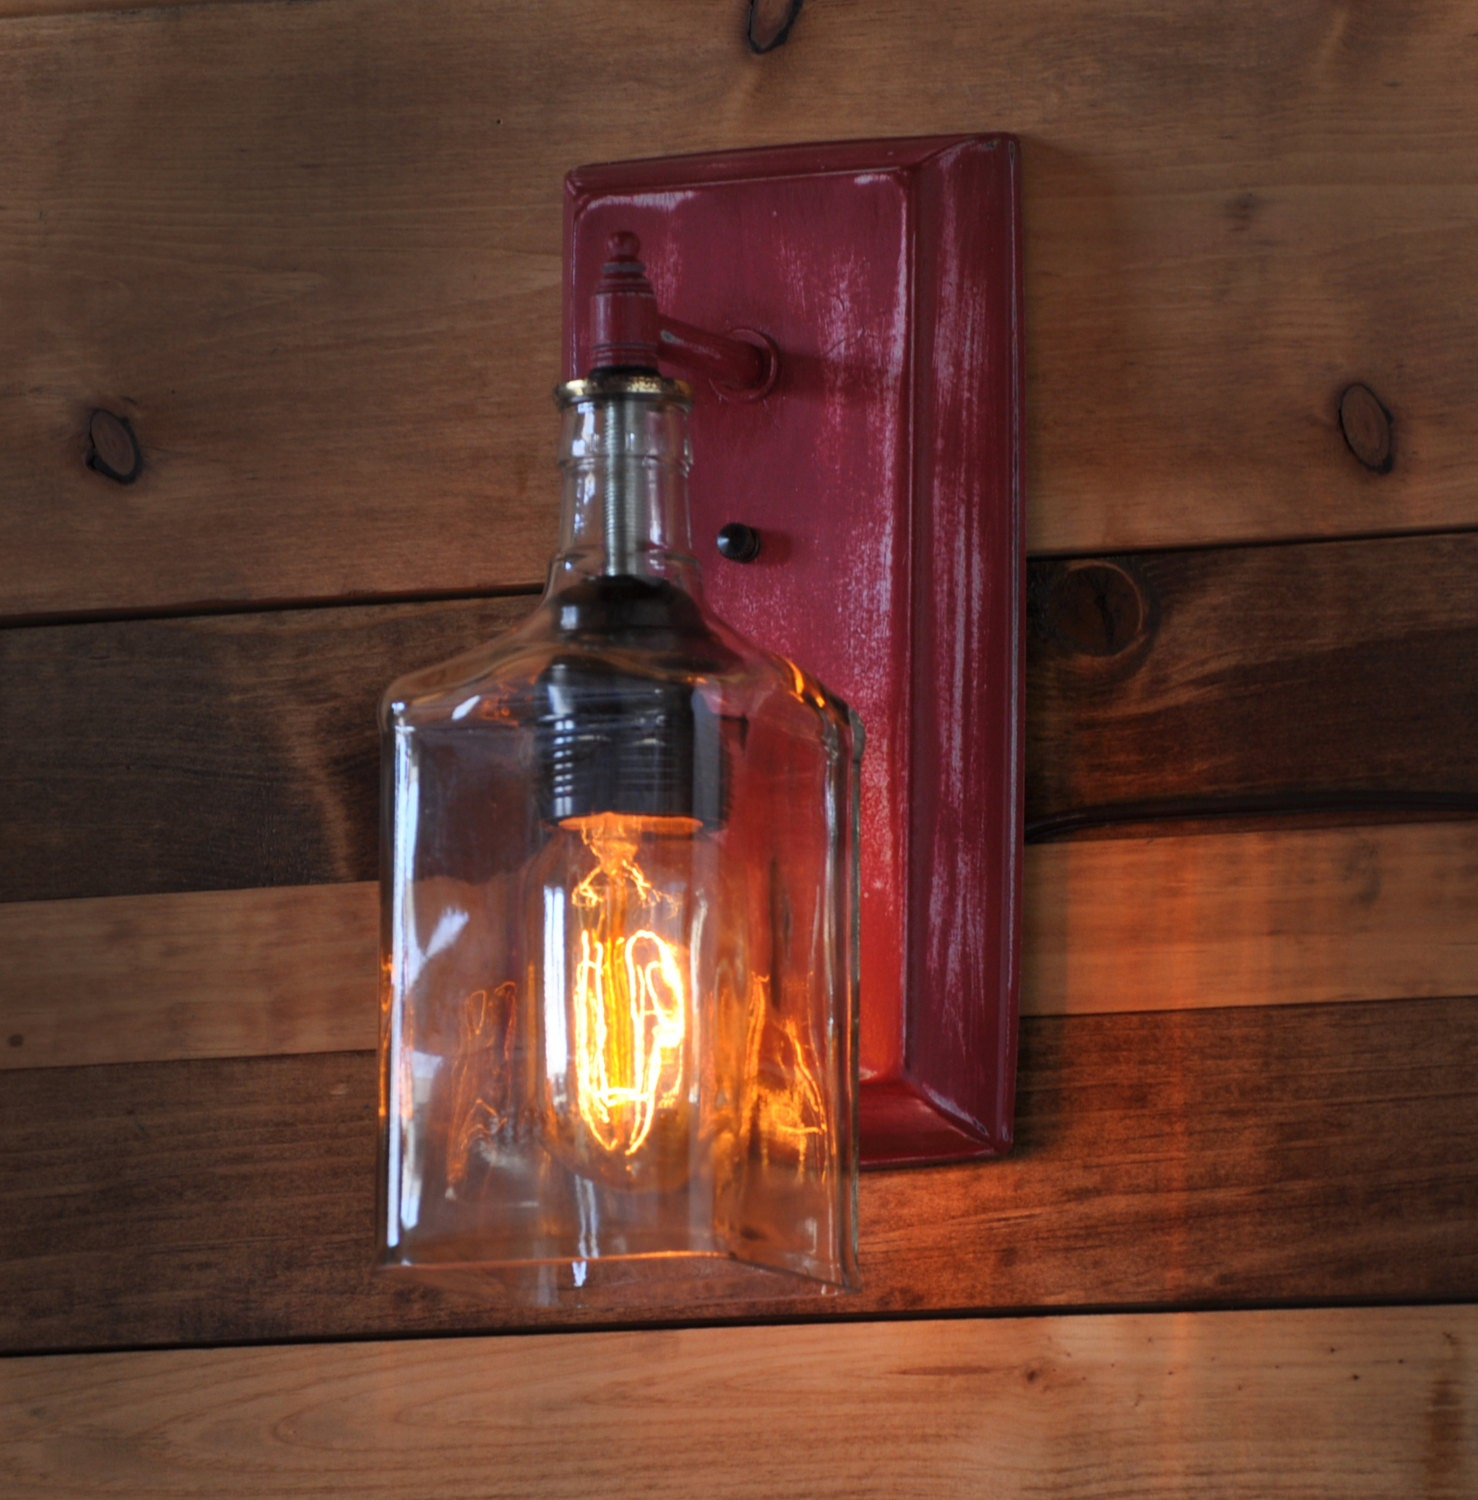 Wall Lamps Etsy : Recycled Bottle Lamp Wall Sconce by MoonshineLamp on Etsy